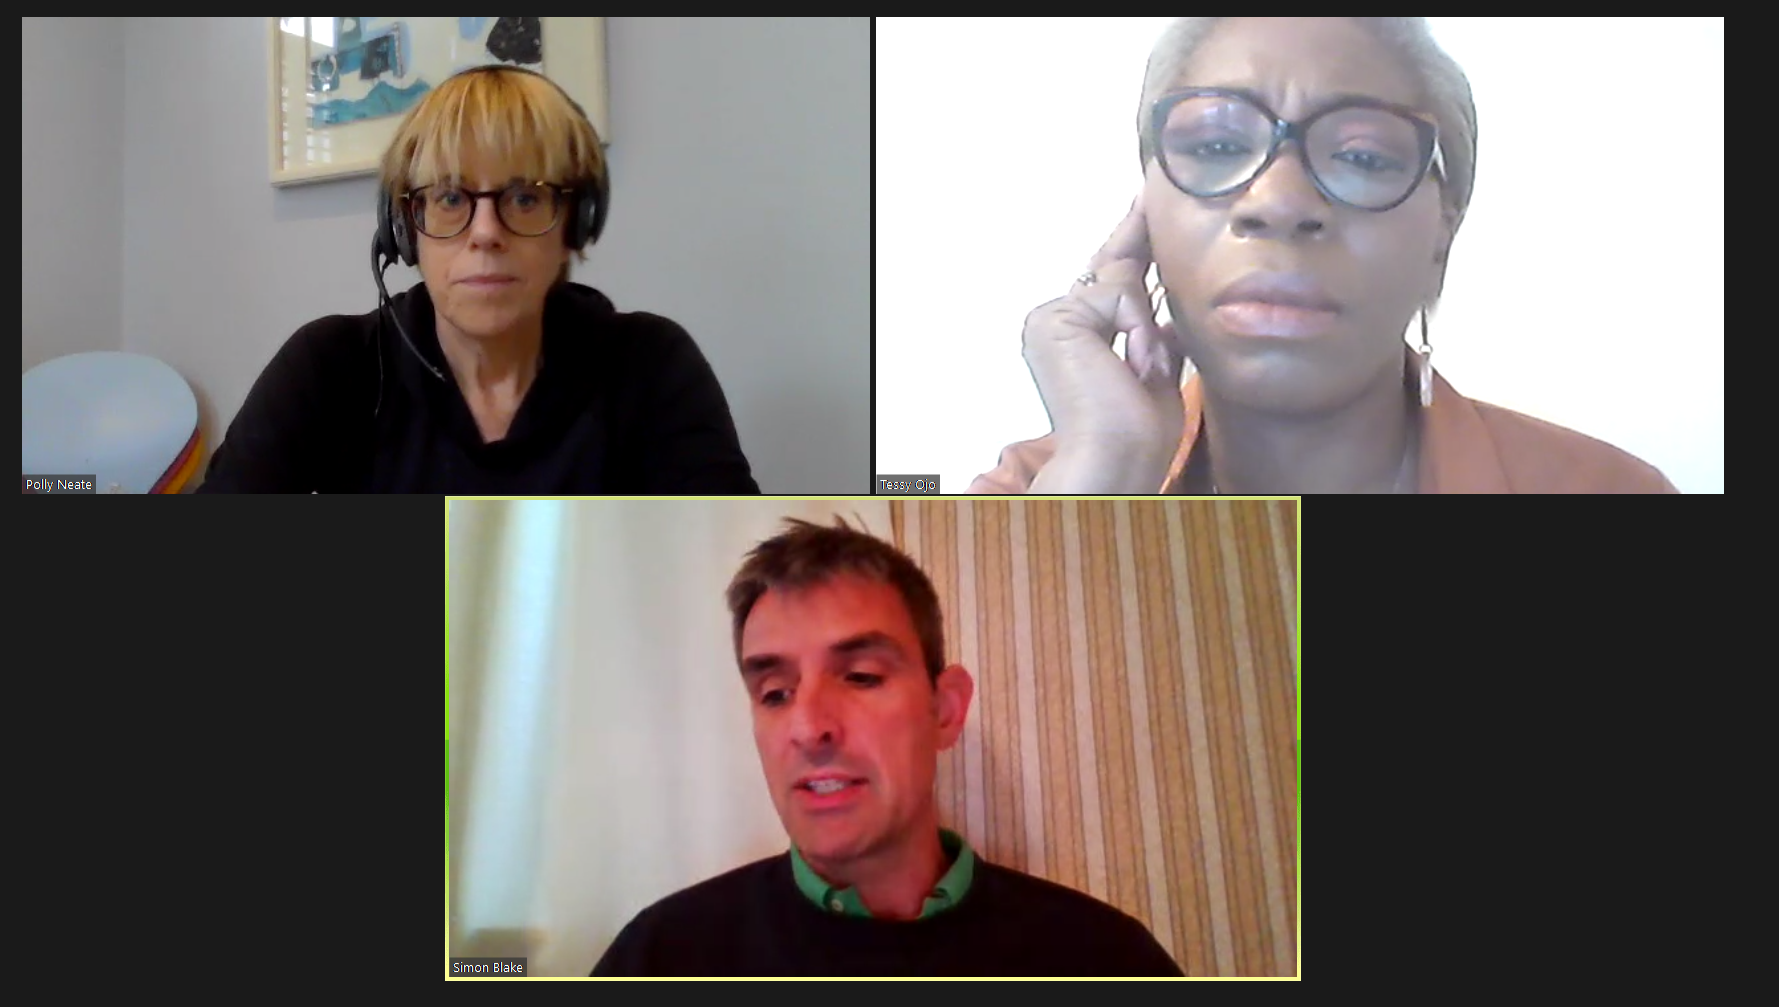 Polly Neate, Tessy Ojo and Simon Blake having a conversation using the platform Zoom